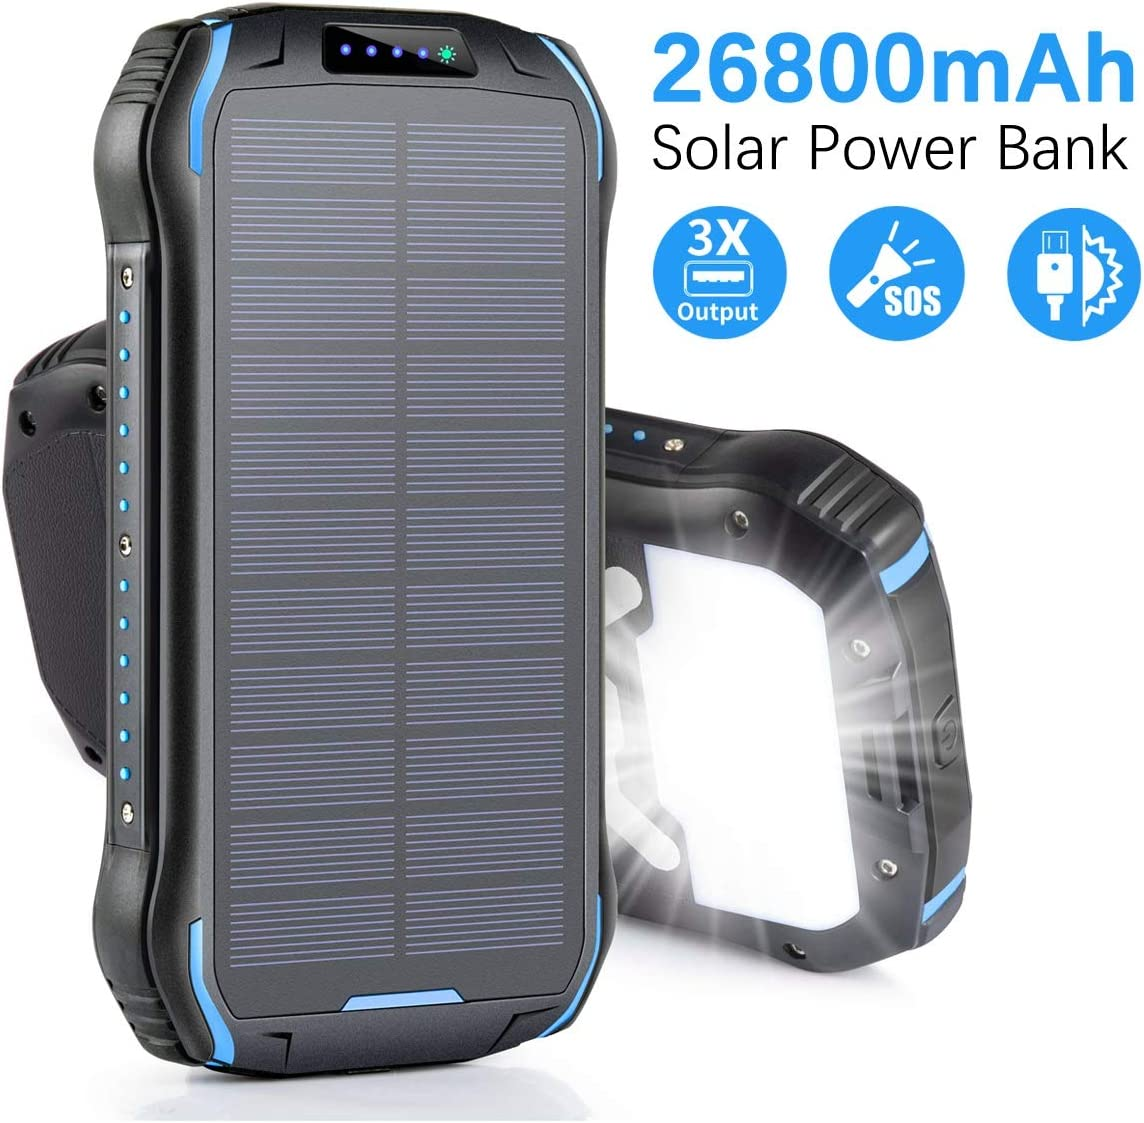 Aonidi Solar Charger 26800mAh Power Bank Portable Charger Battery Pack with 3 Outputs & 2 Inputs(Micro USB & Type-C) High Capacity Backup Battery Compatible Smartphone,Tablet and More 71v06yjTAKL